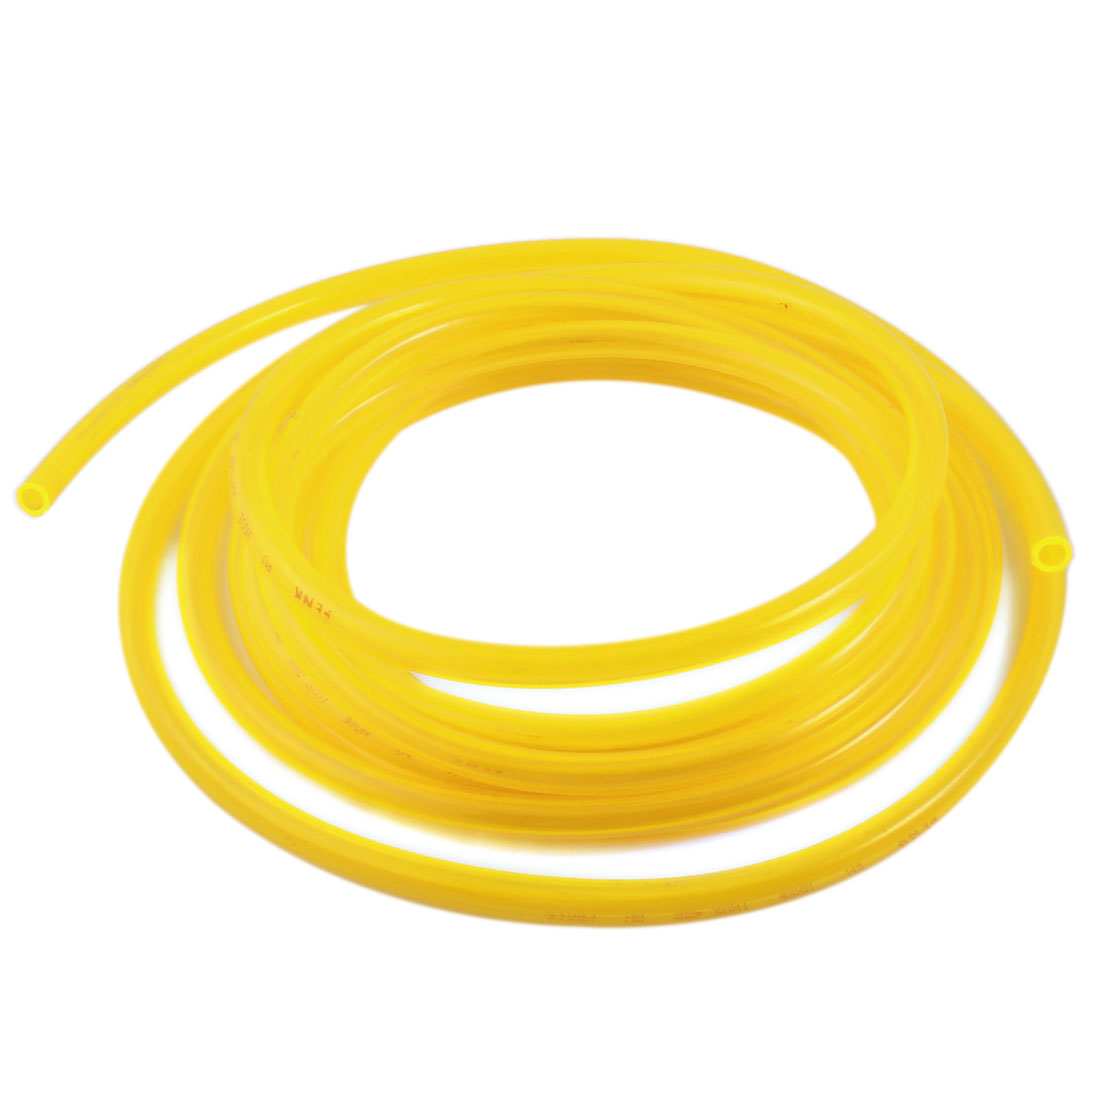 5m 6.5x10mm Air Compressor Fuel Gas Petrol Diesel PU Line Tube Hose Clear Yellow